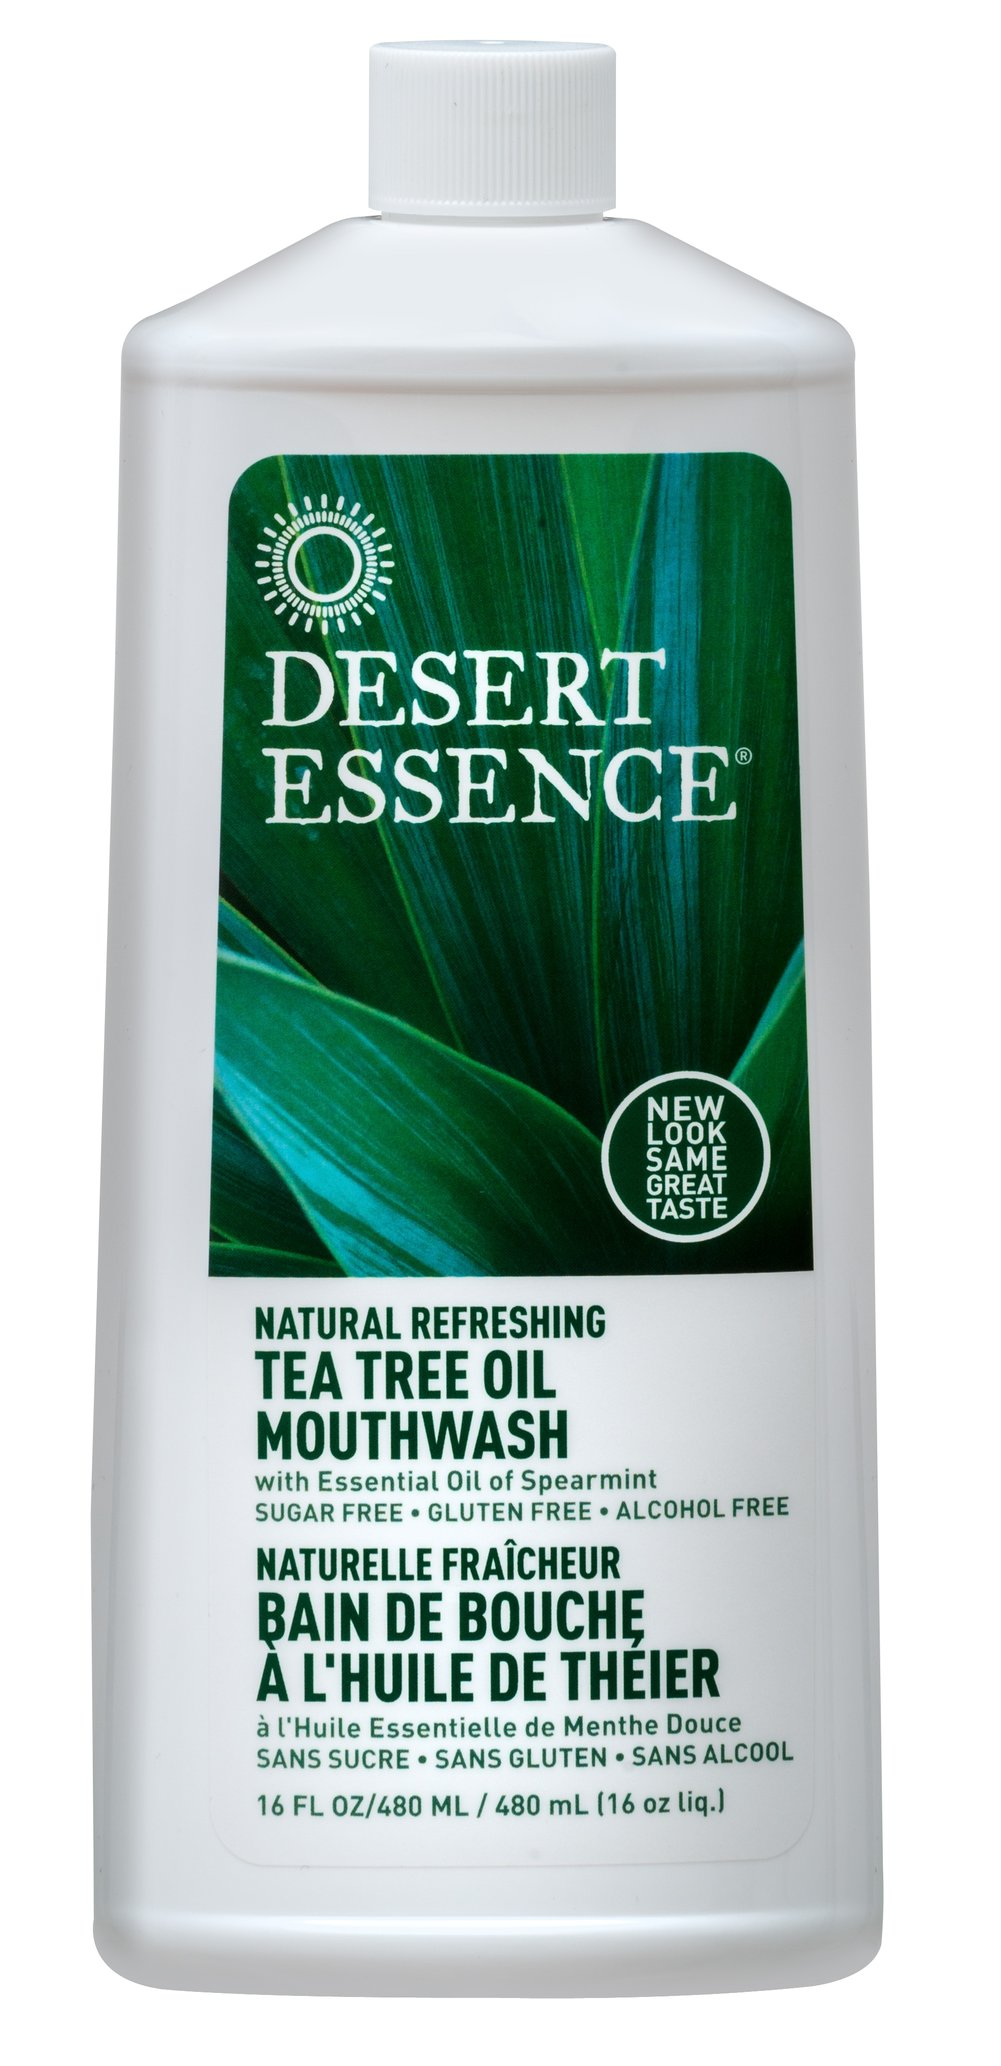 Tea Tree Oil Mouthwash With Spearmint <p><strong>From the Manufacturer's Label:</strong></p><p>Tea Tree Oil Mouthwash With Spearmint is manufactured by Desert Essence®.</p> 16 oz Liquid  $5.19